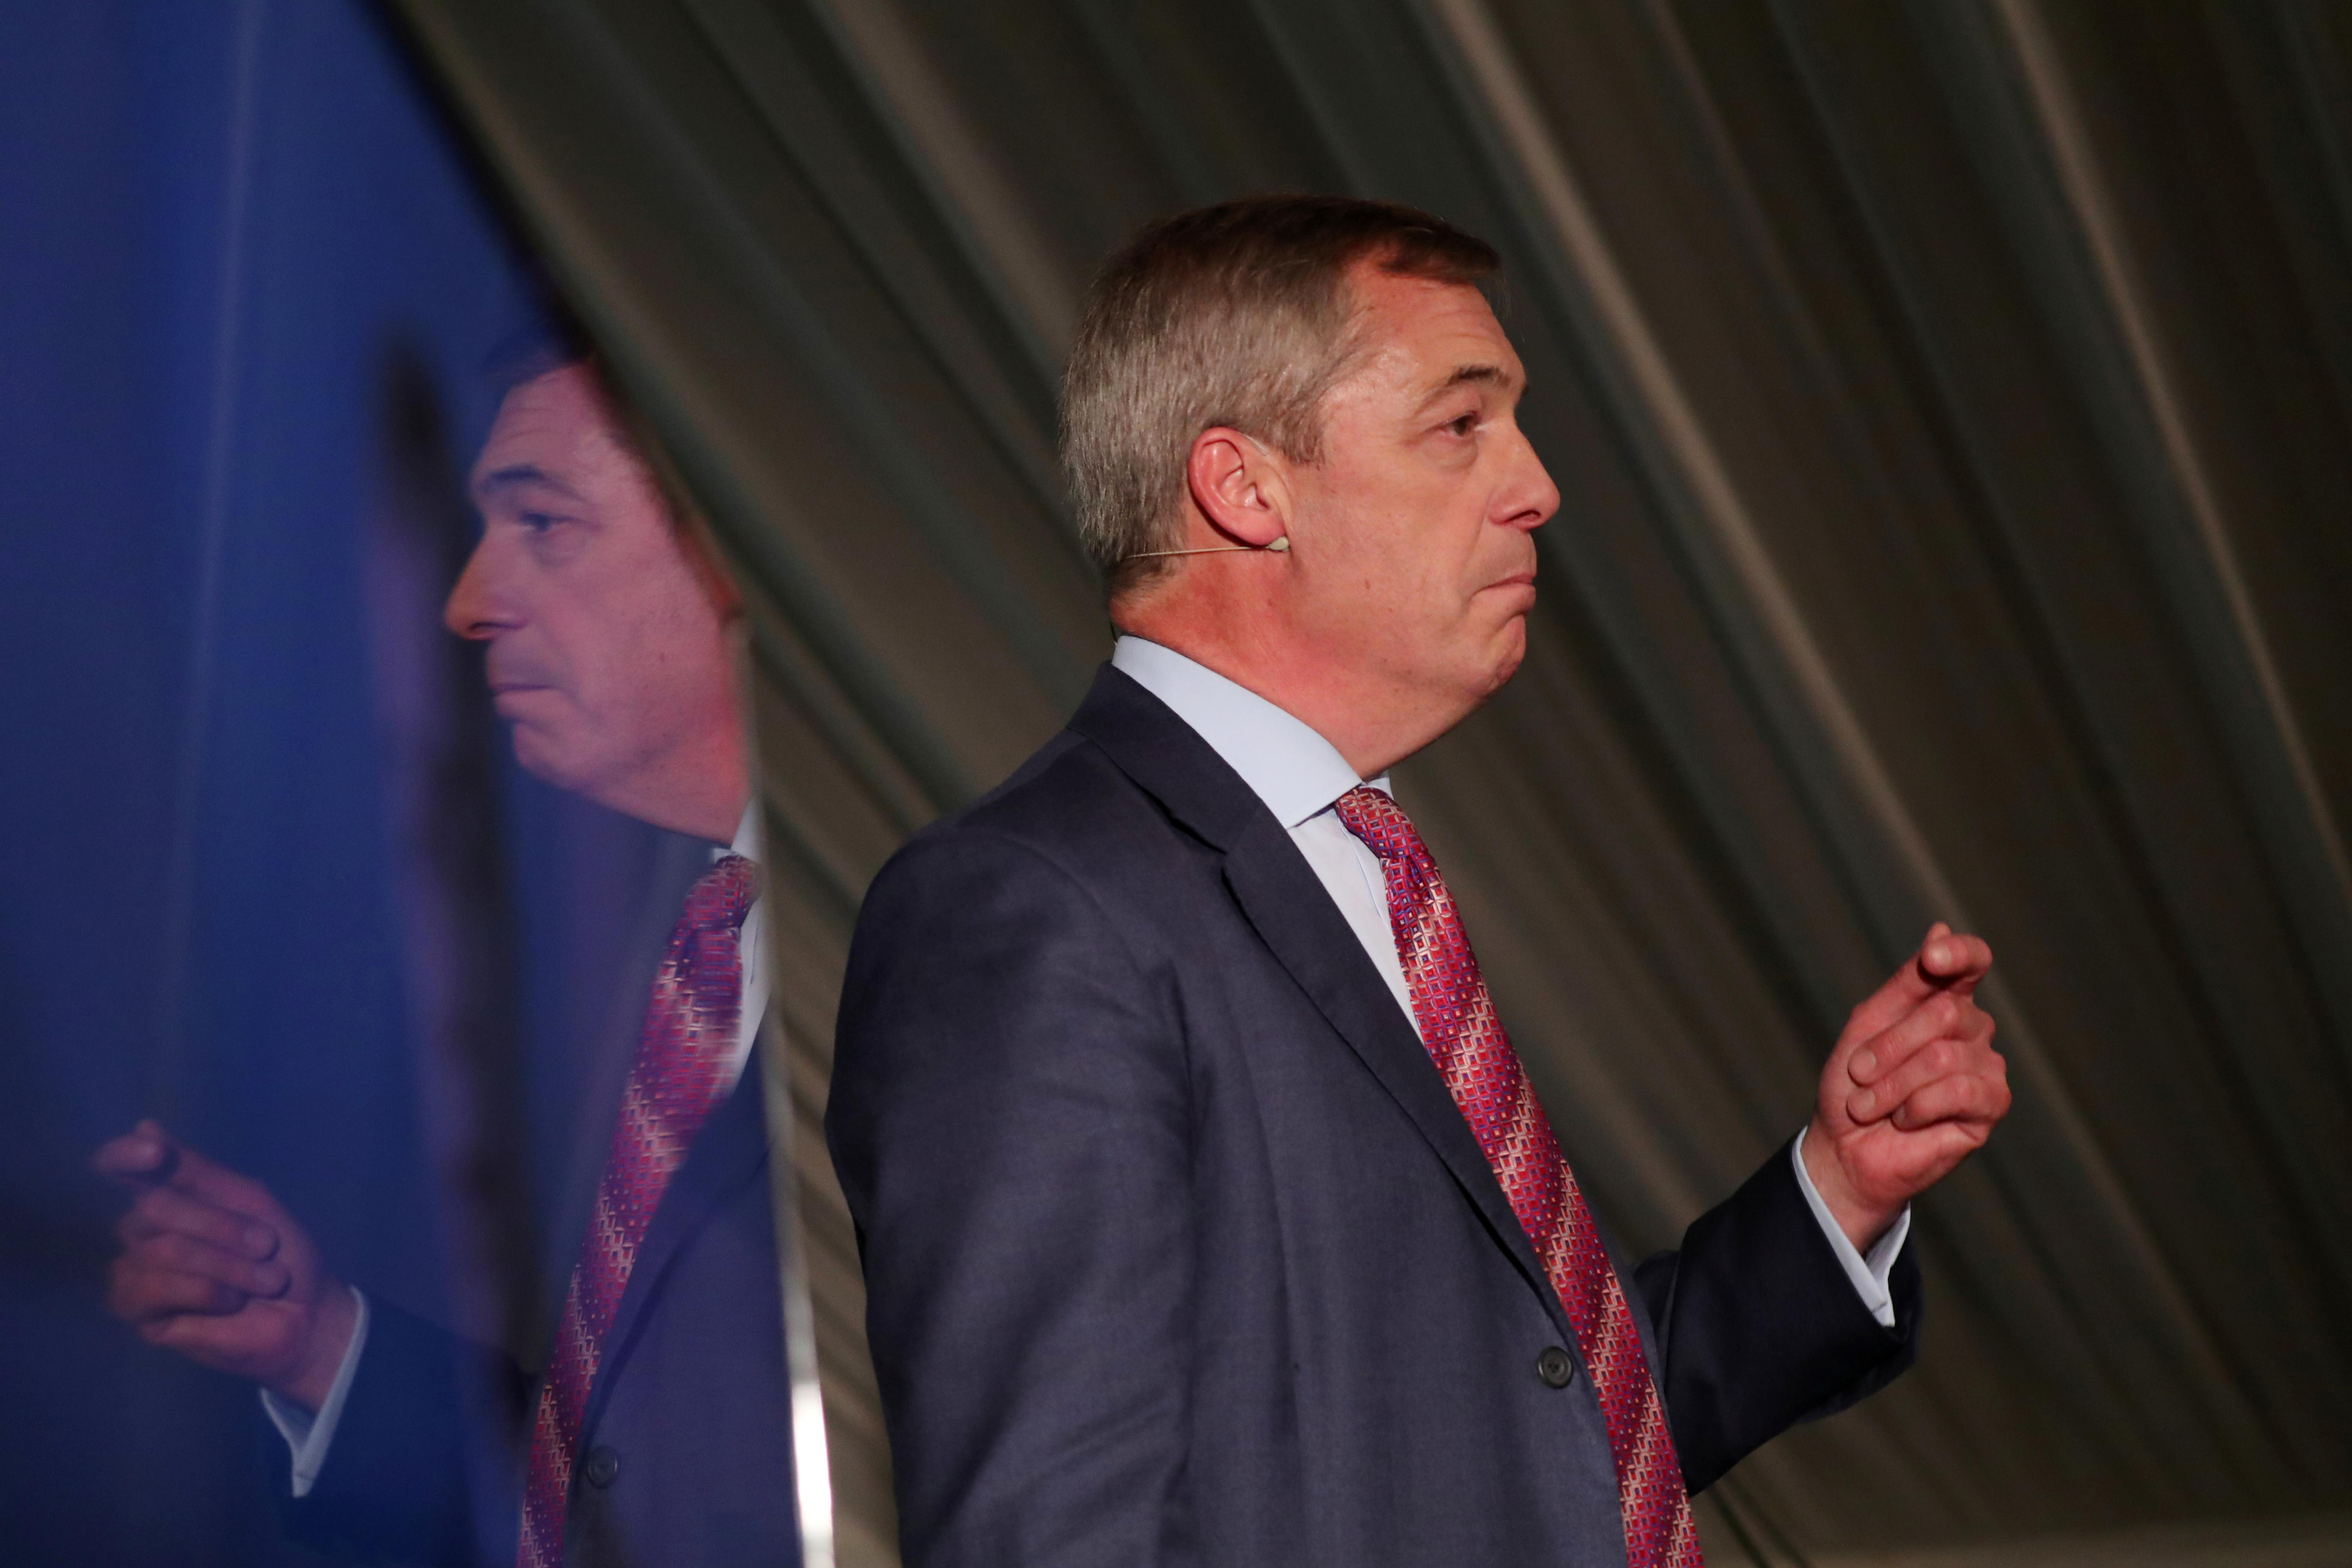 Brexit donor Arron Banks urges Farage to stand down in Labour...